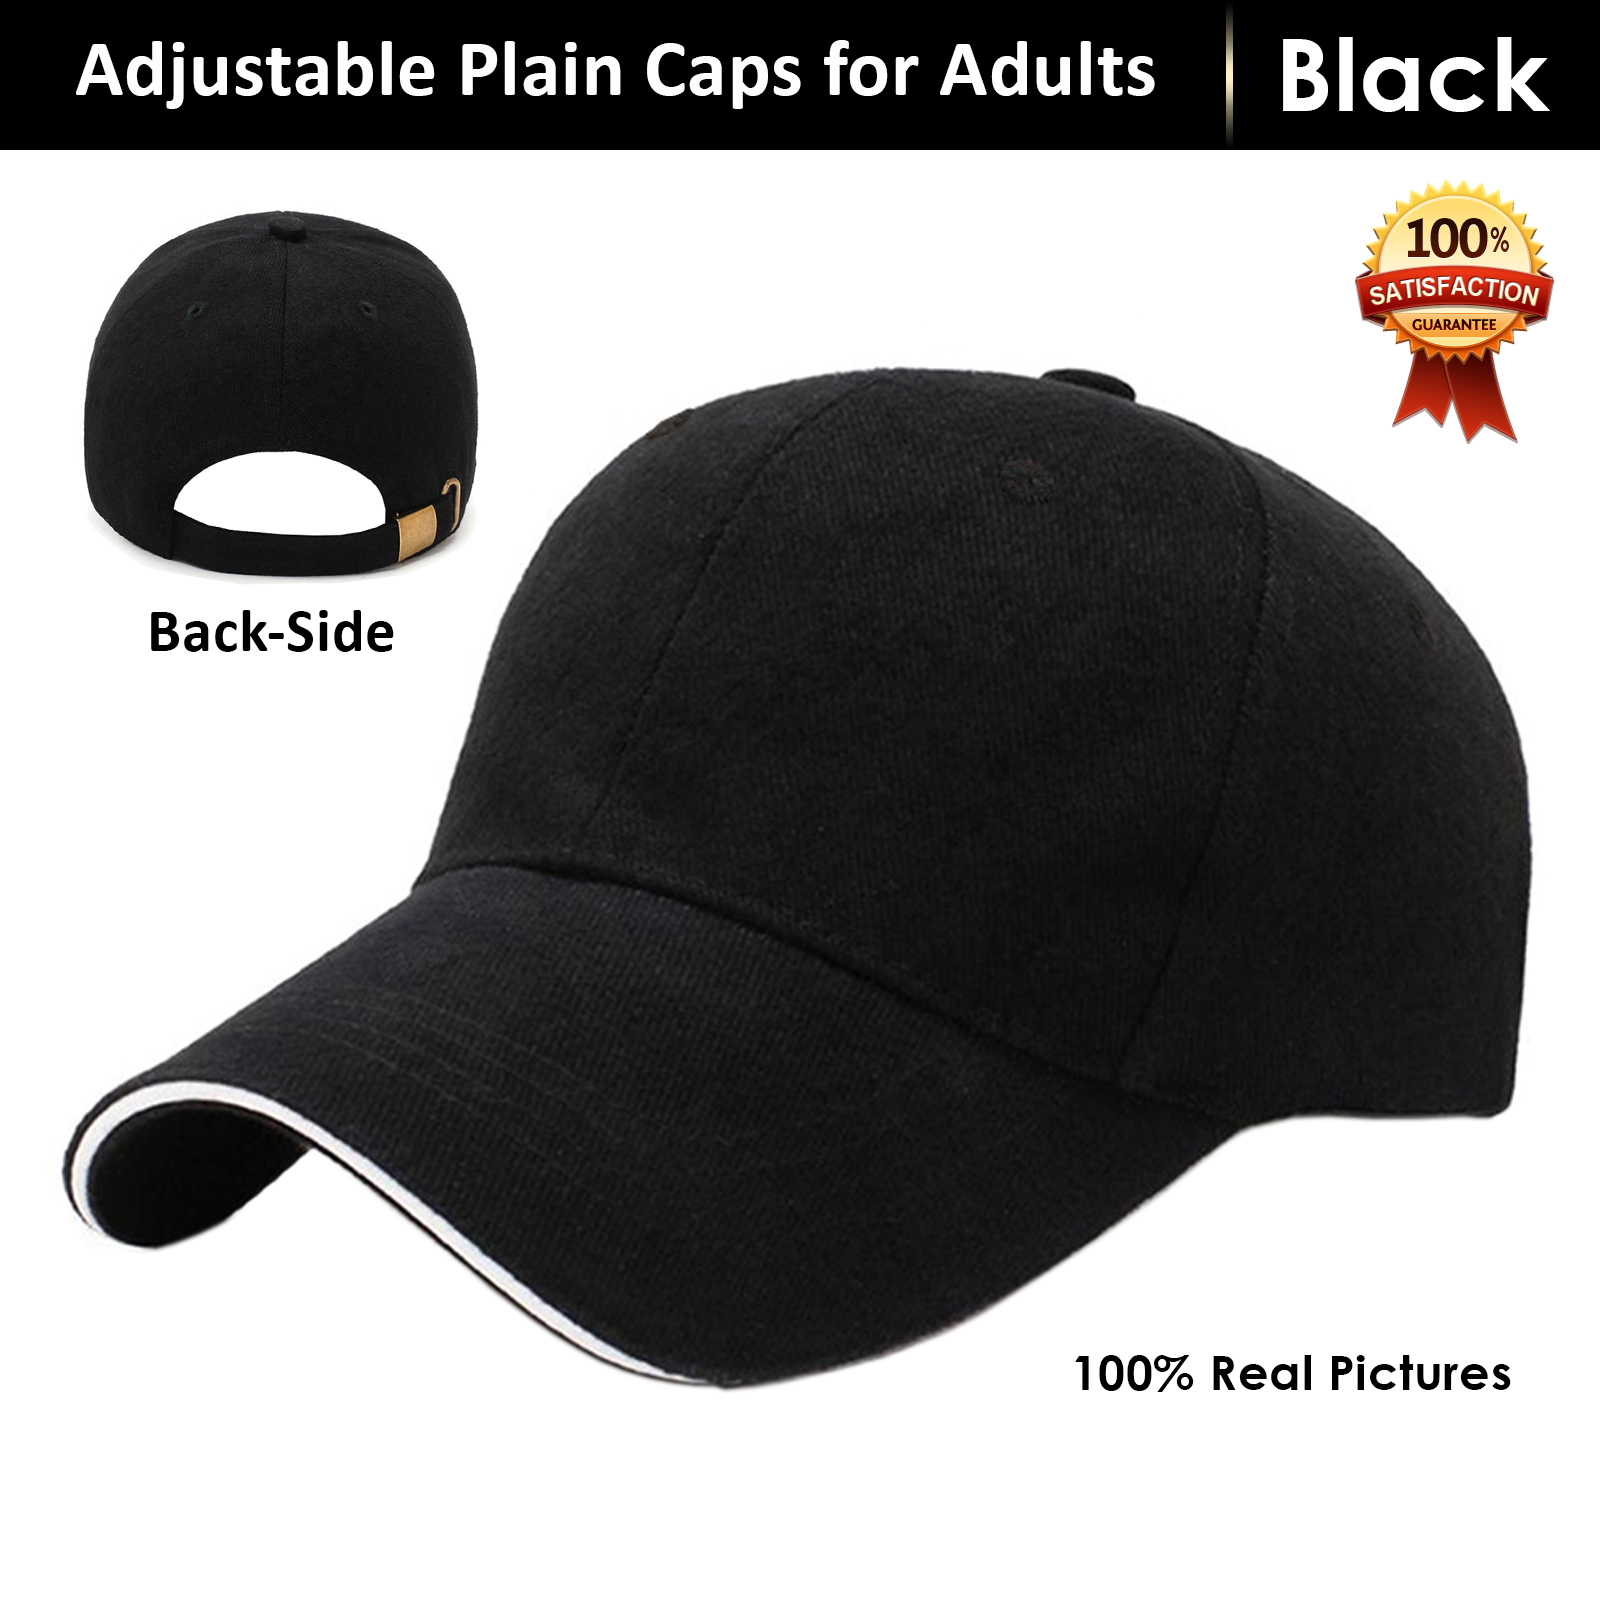 New Best Quality Outdoor Baseball Adults P Caps With Curved Brim For Men Hats for Unisex With Adjustable Buckle Sun Protection Cap for Men in Black Blue Red Brown Beige Grey and White